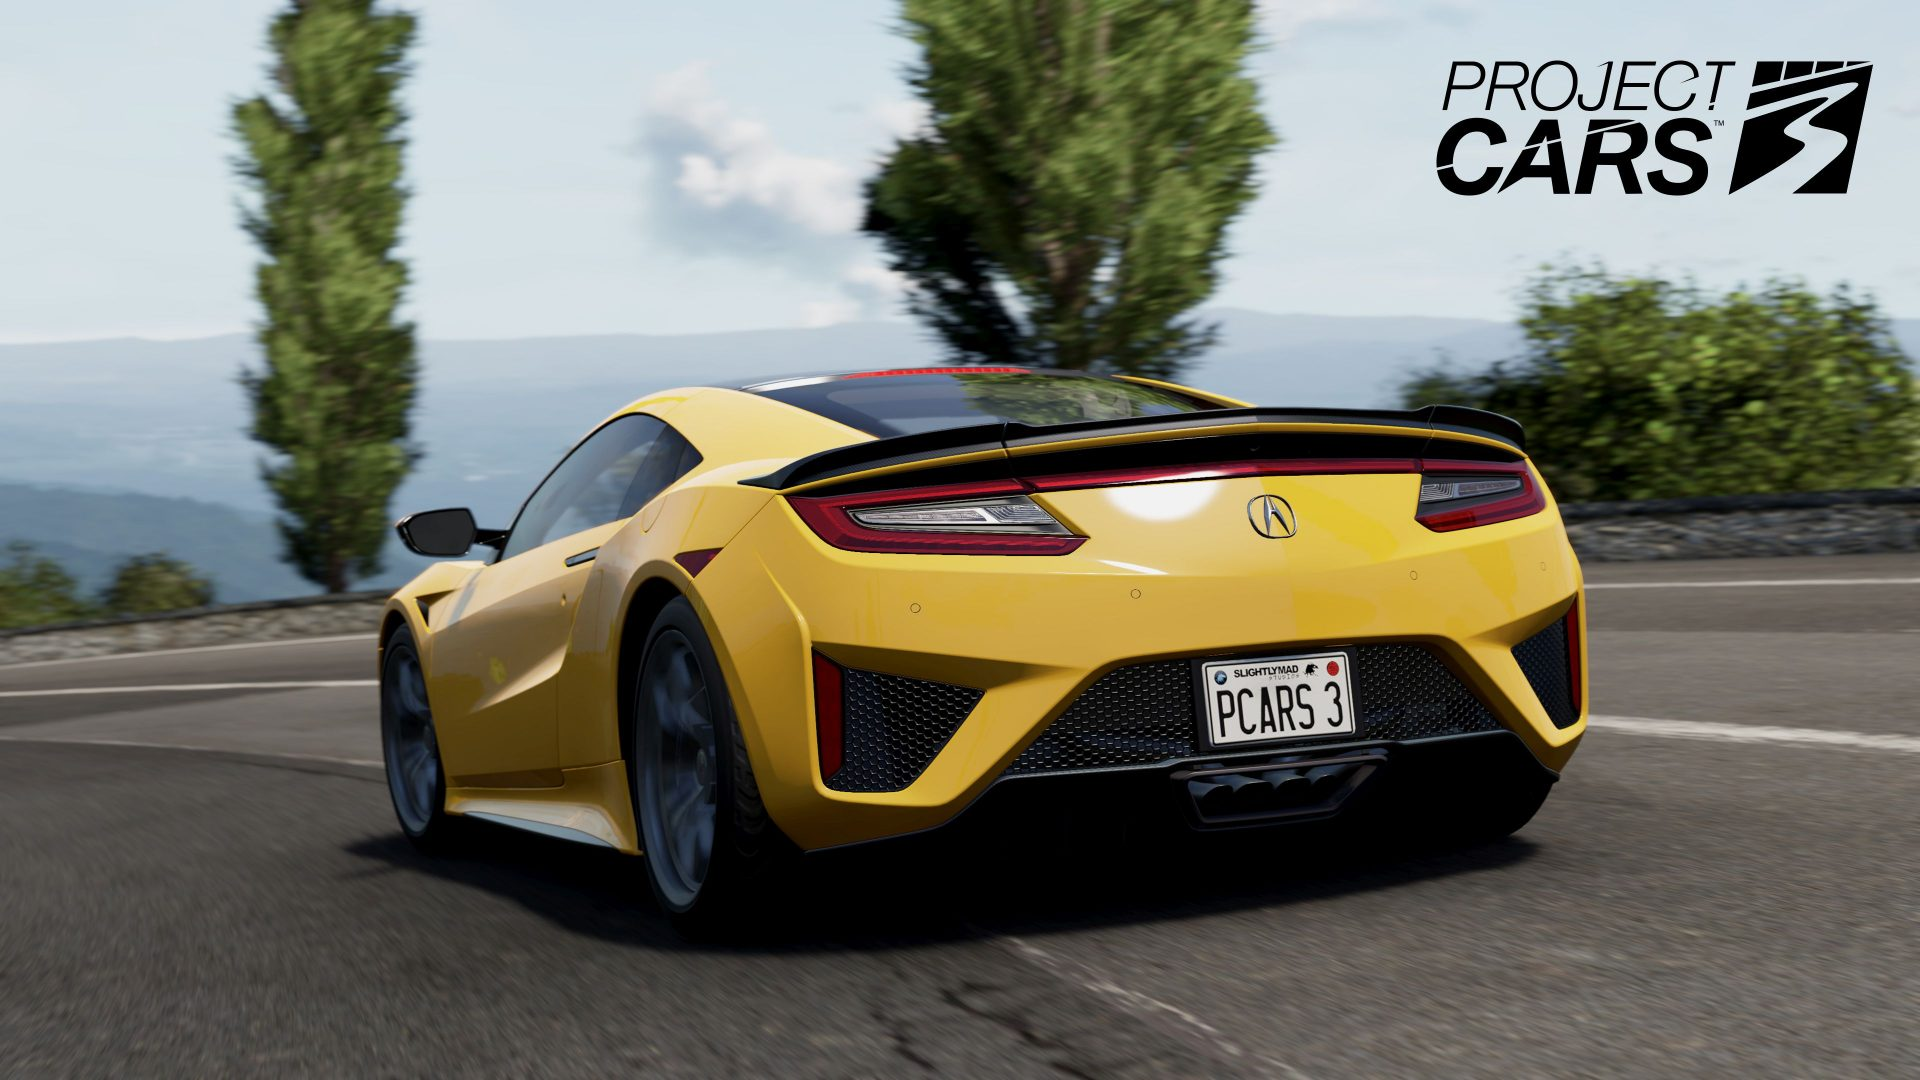 Project CARS 3 Launch Confirmed for August 28